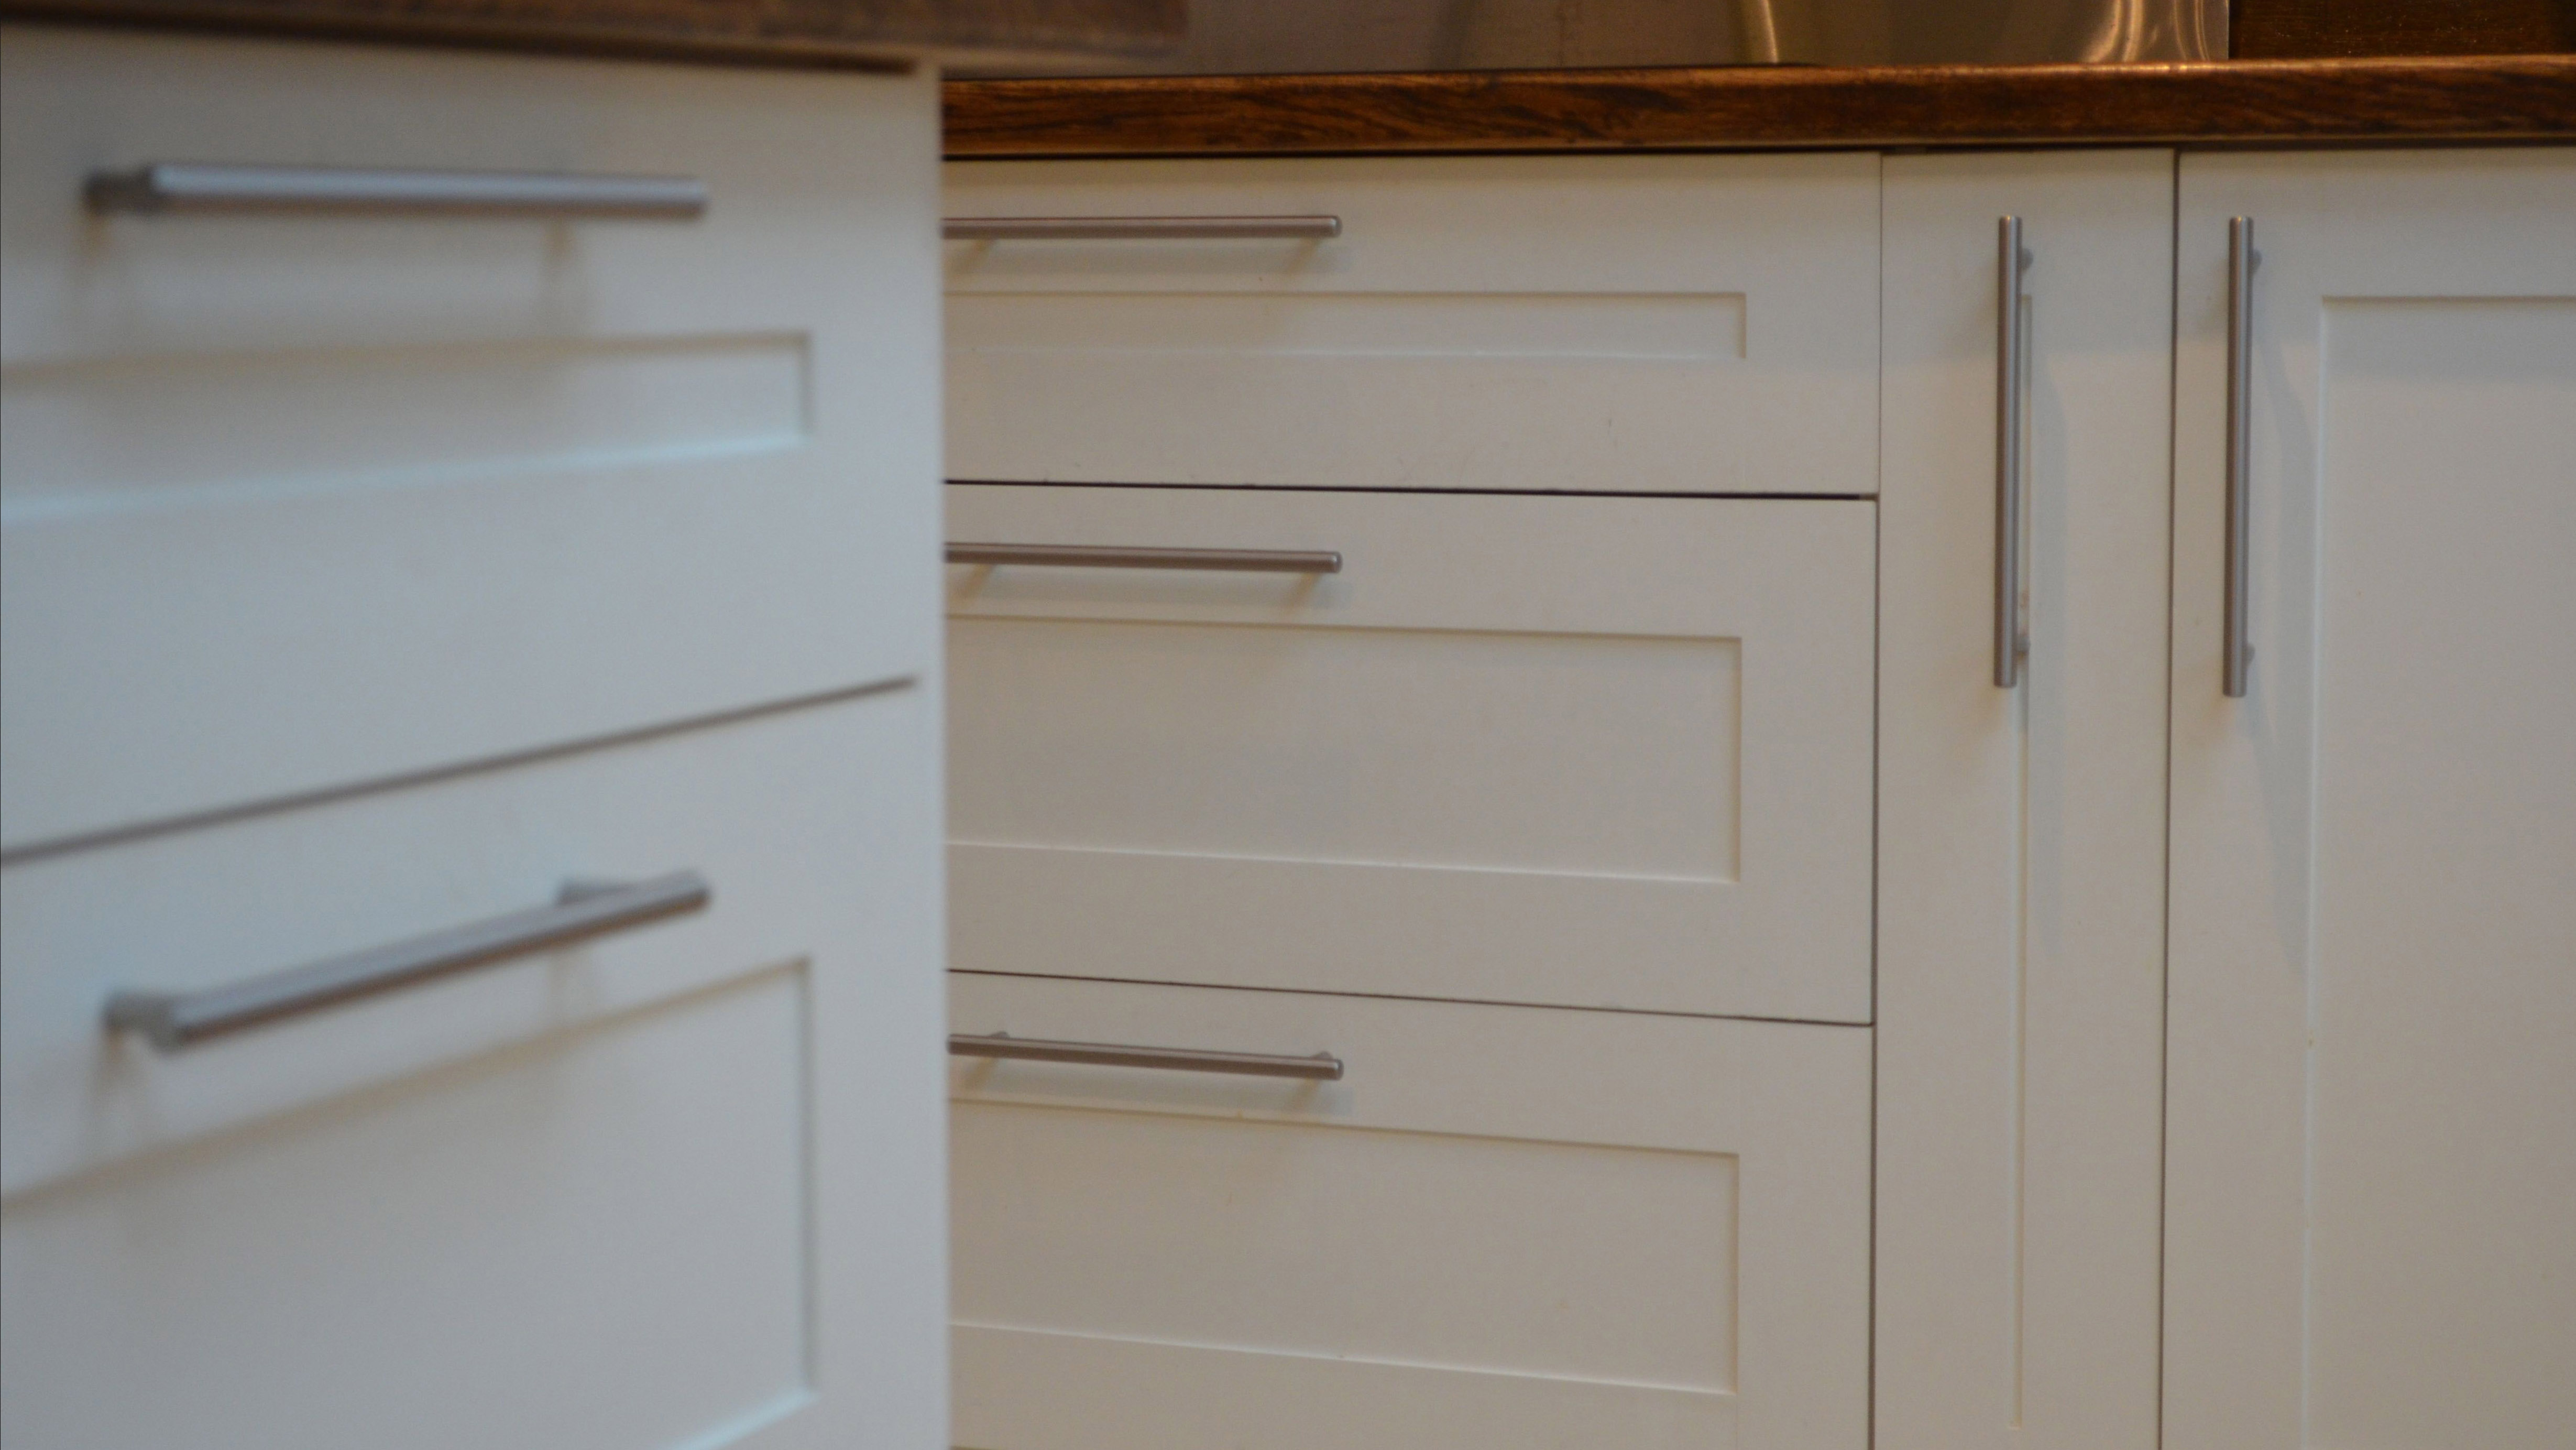 Le Meilleur Replacement Doors In Ikea Kitchen Cupboards Cabinets Ce Mois Ci